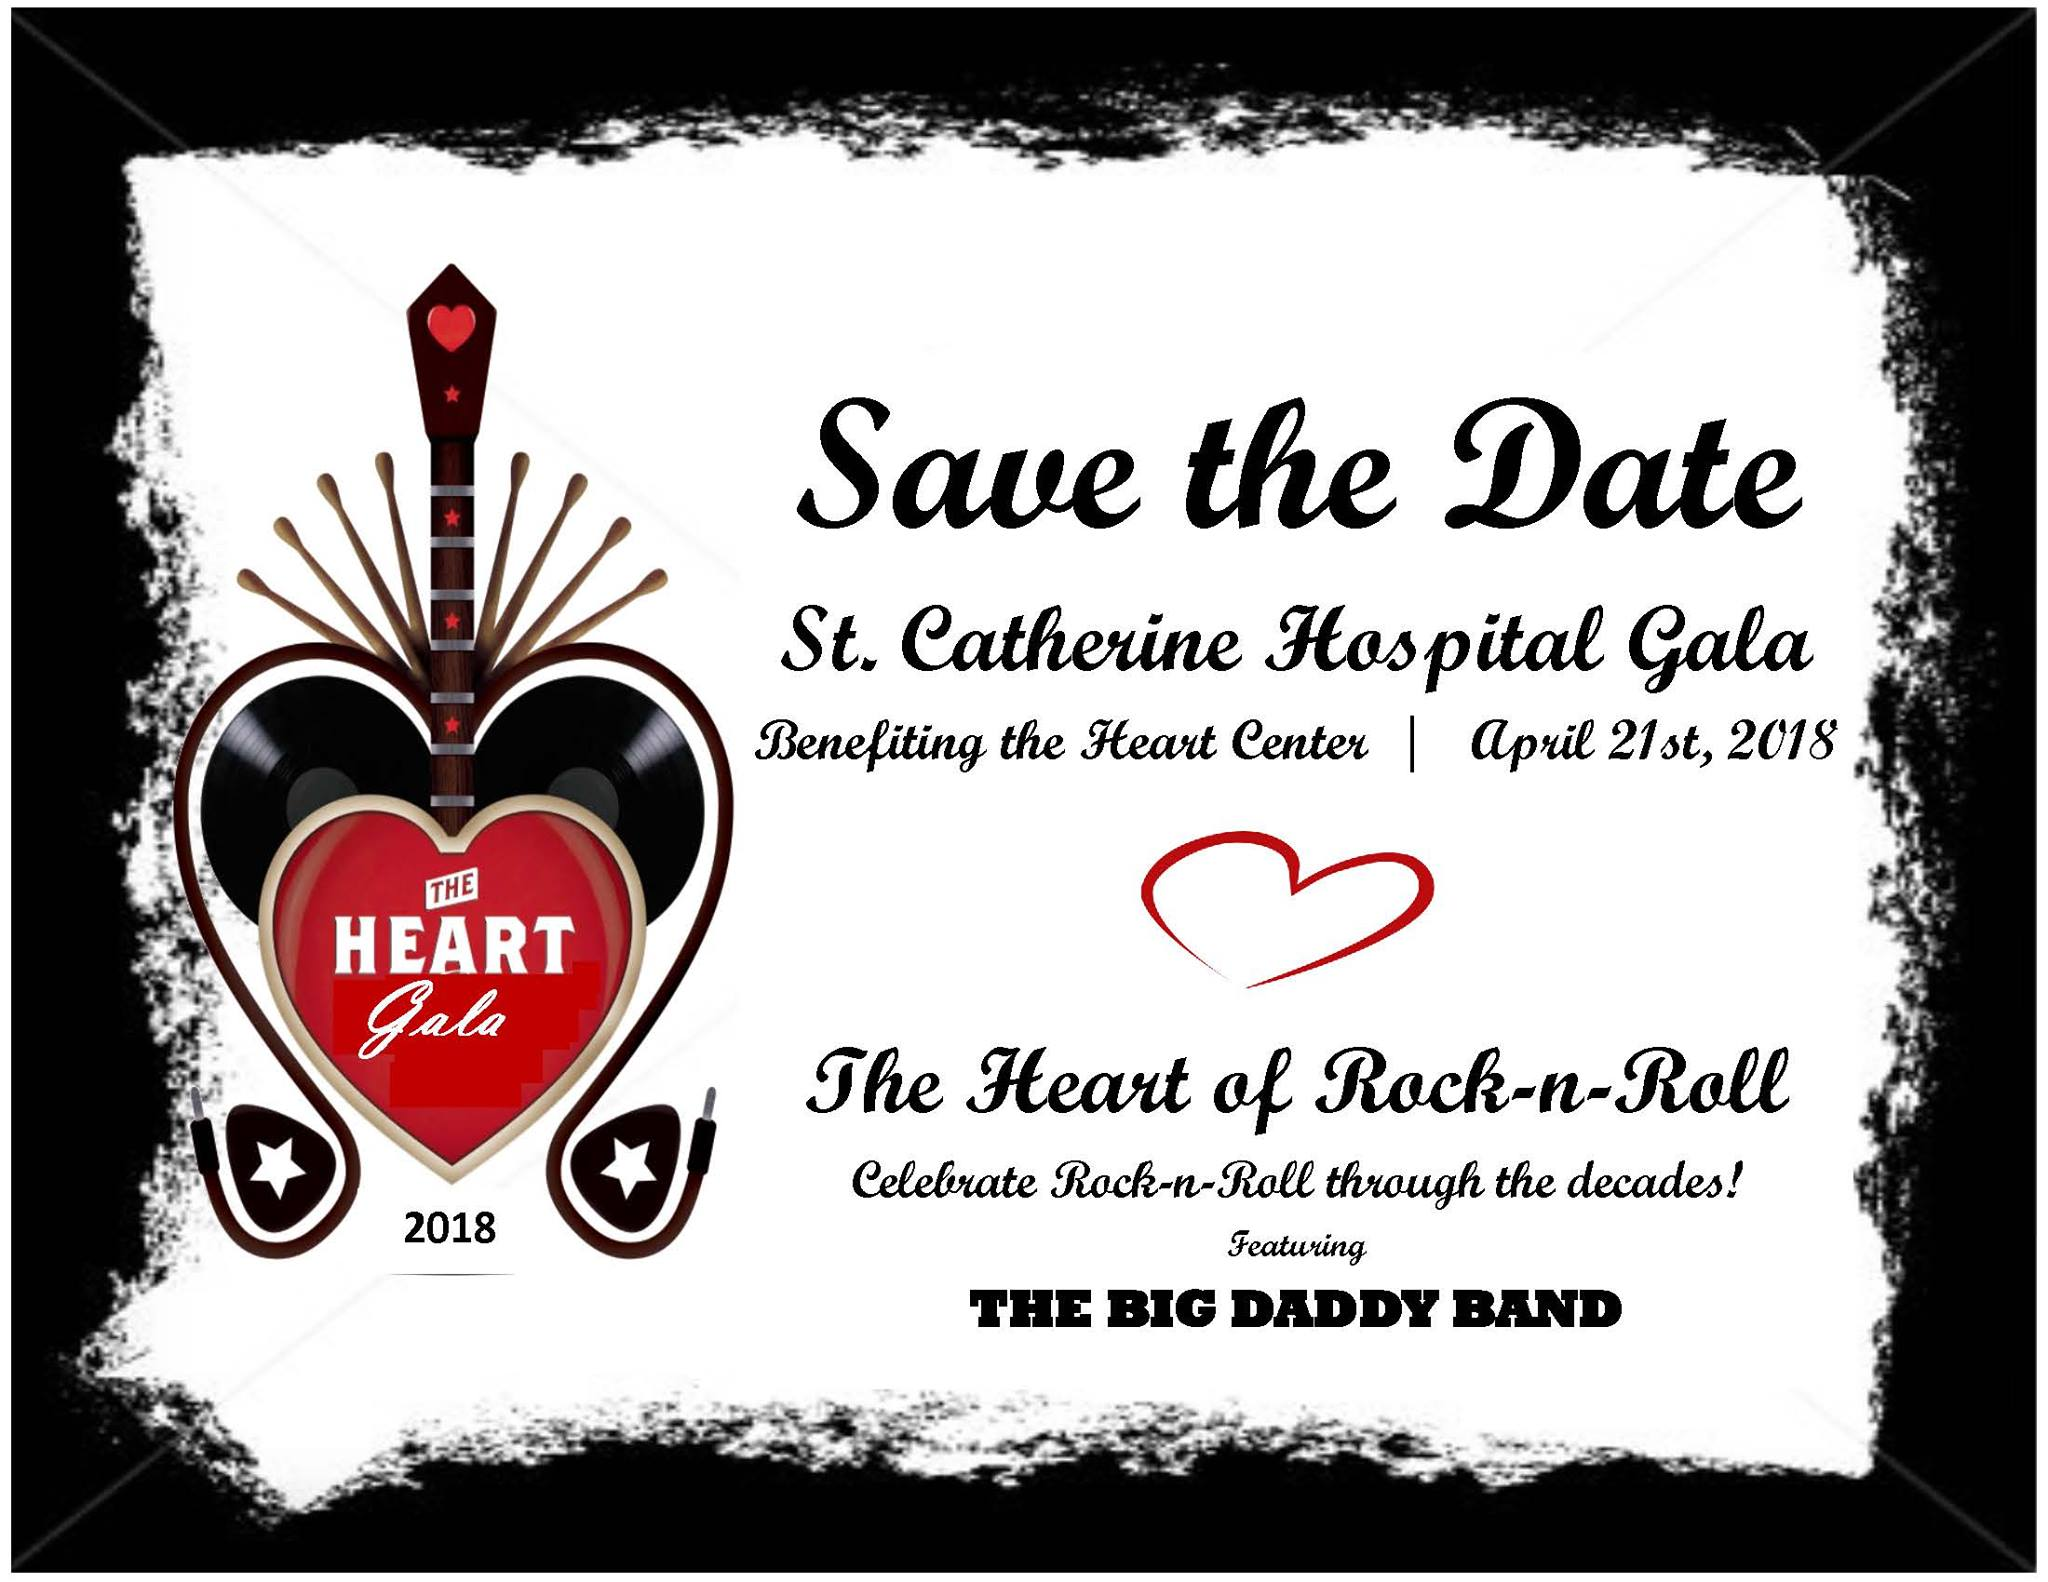 Heart of Rock-n-Roll Gala @ St. Catherine Hospital